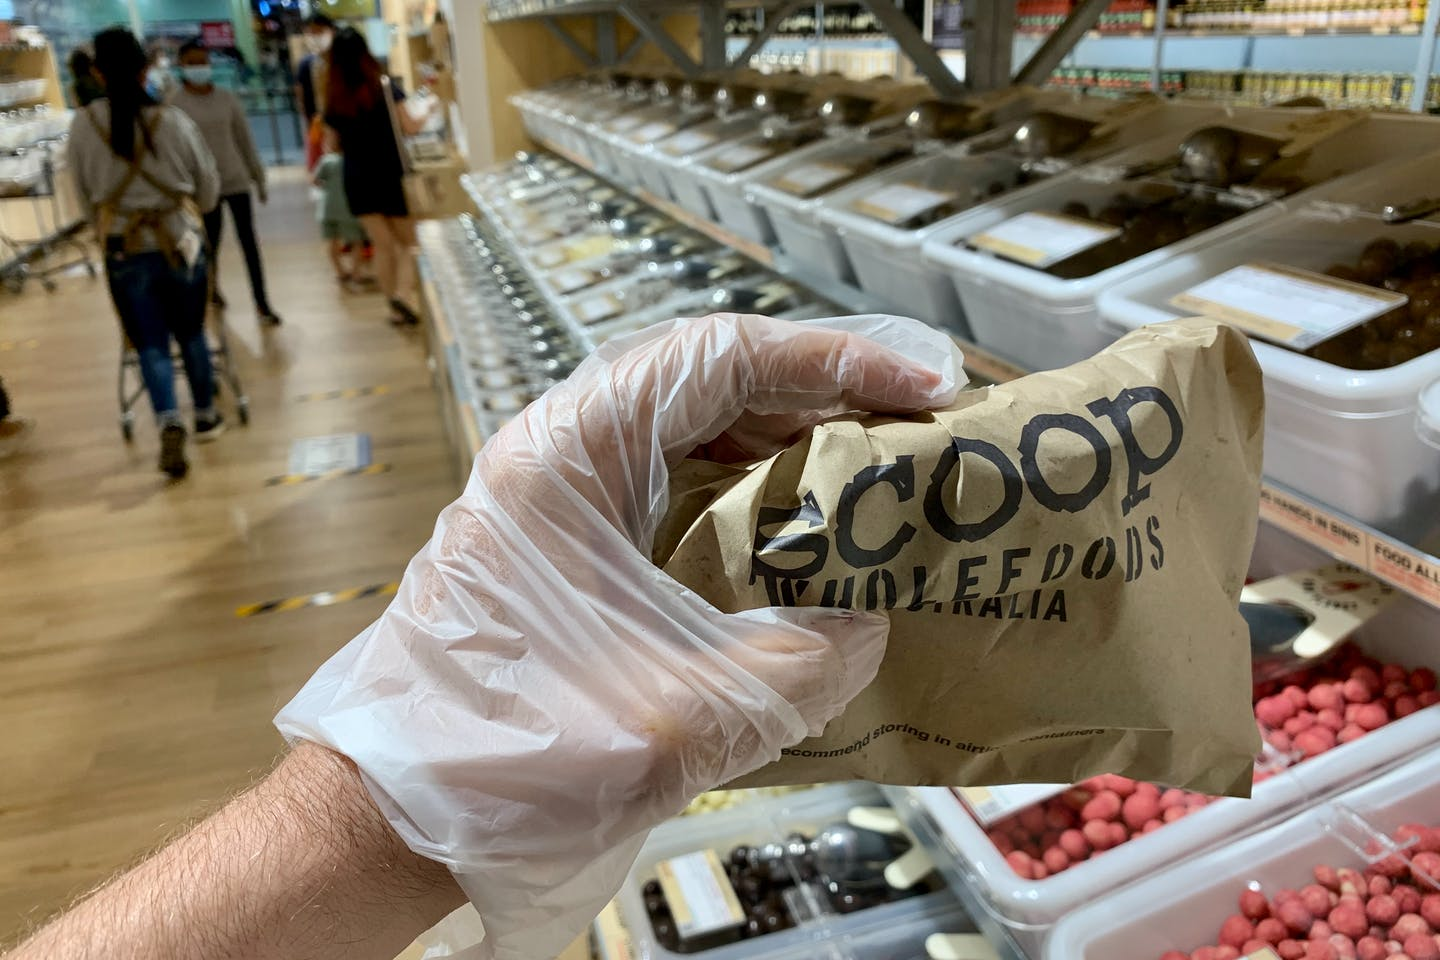 A customer using a disposable plastic glove holds a paper bag of products at a Scoop store in Singapore.